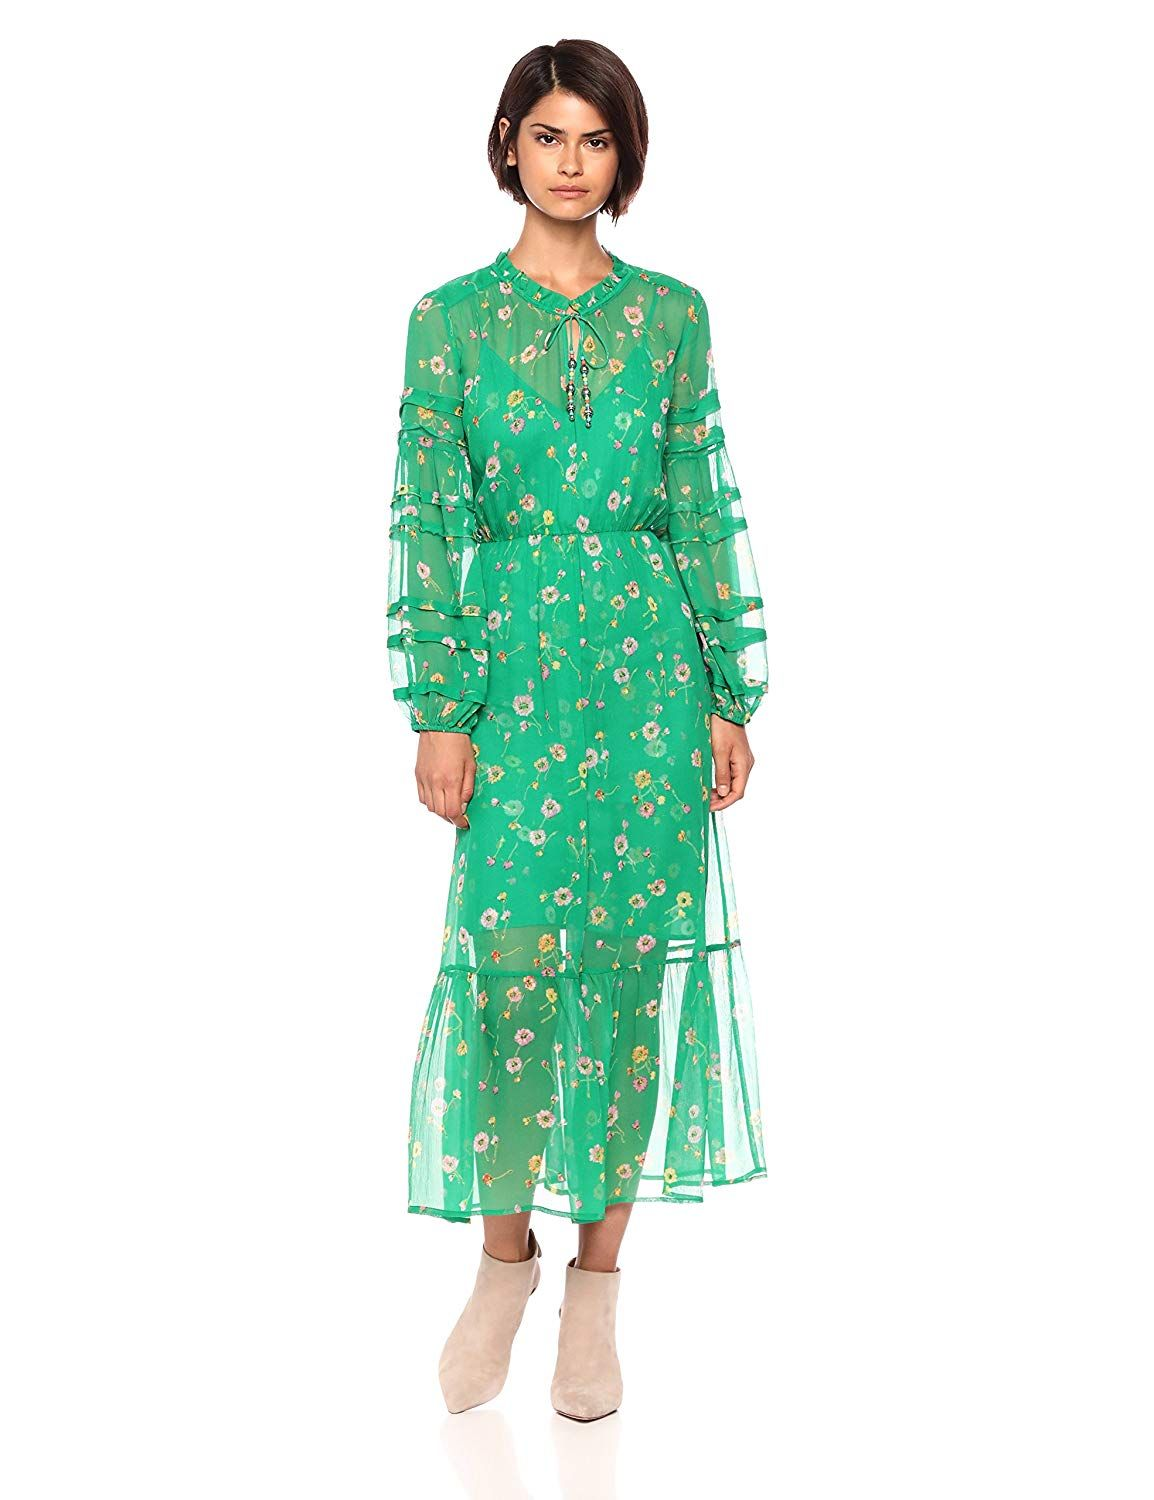 3b91ff46b80 The Kooples Women's Women's Floral V-Neck Sheer Maxi Dress with ...